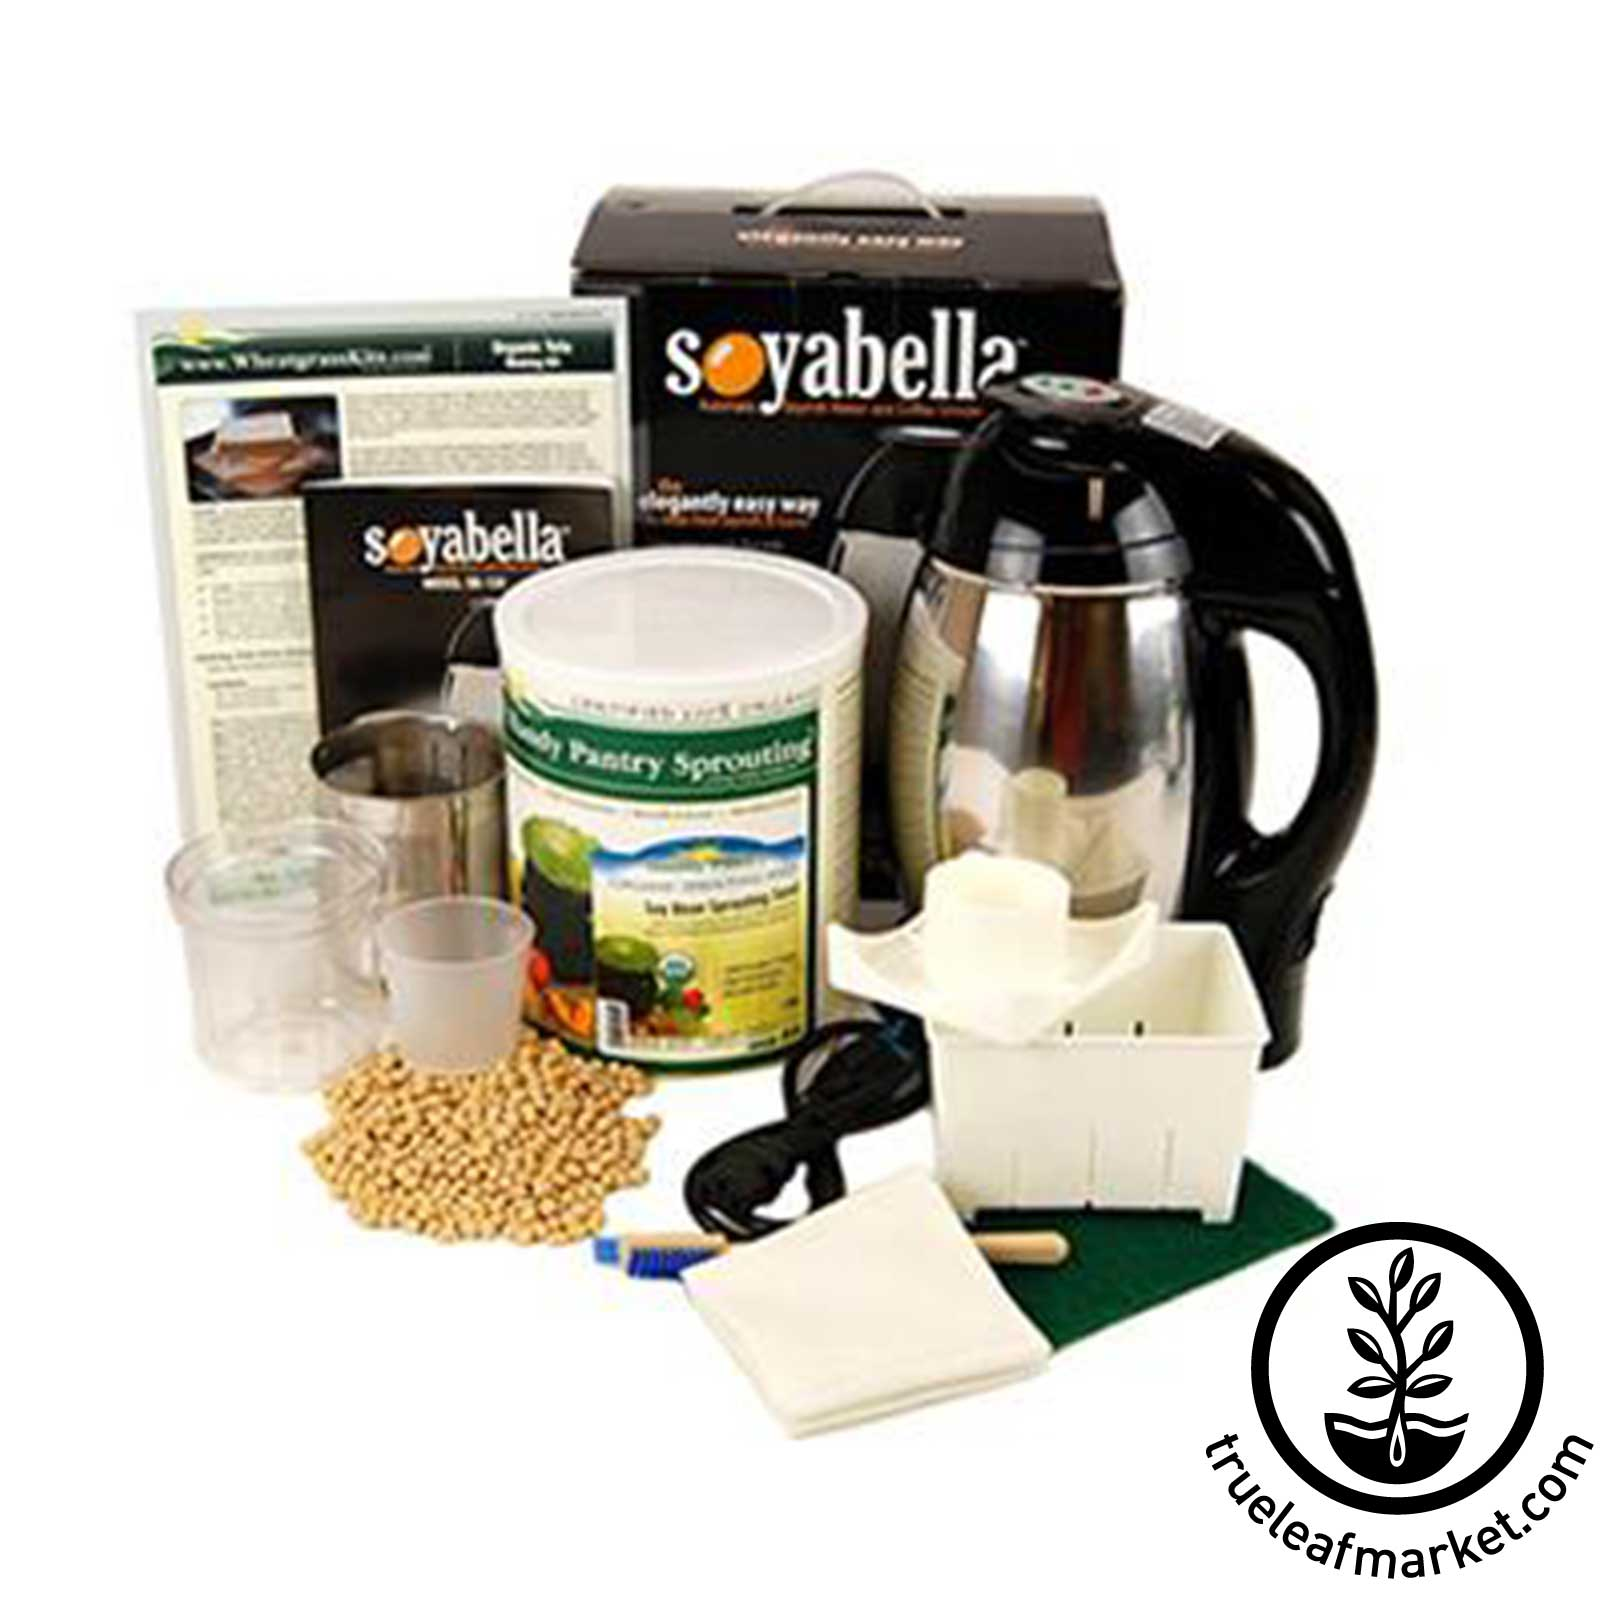 Soymilk & Tofu Making Kit with 5 Lbs Soybeans